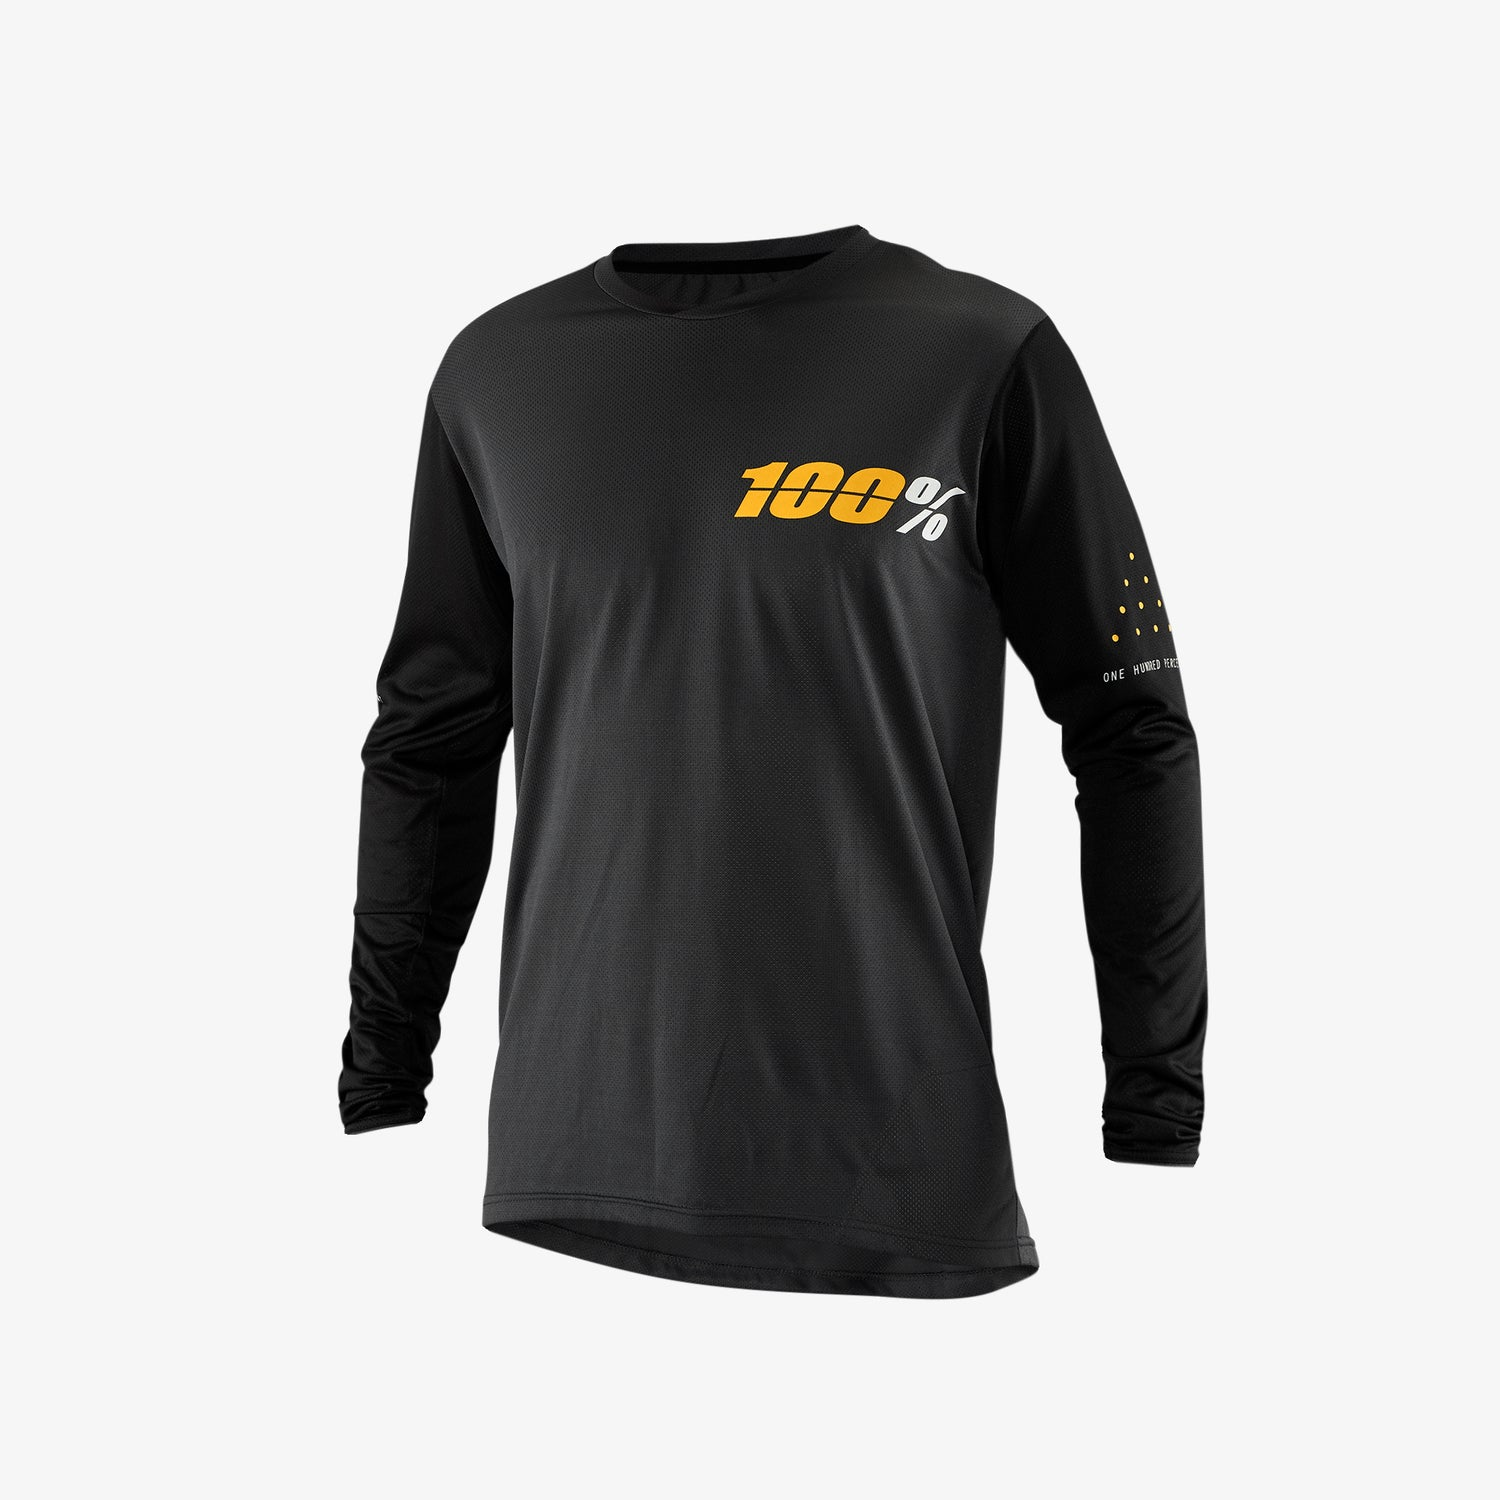 RIDECAMP Long Sleeve Jersey - Charcoal